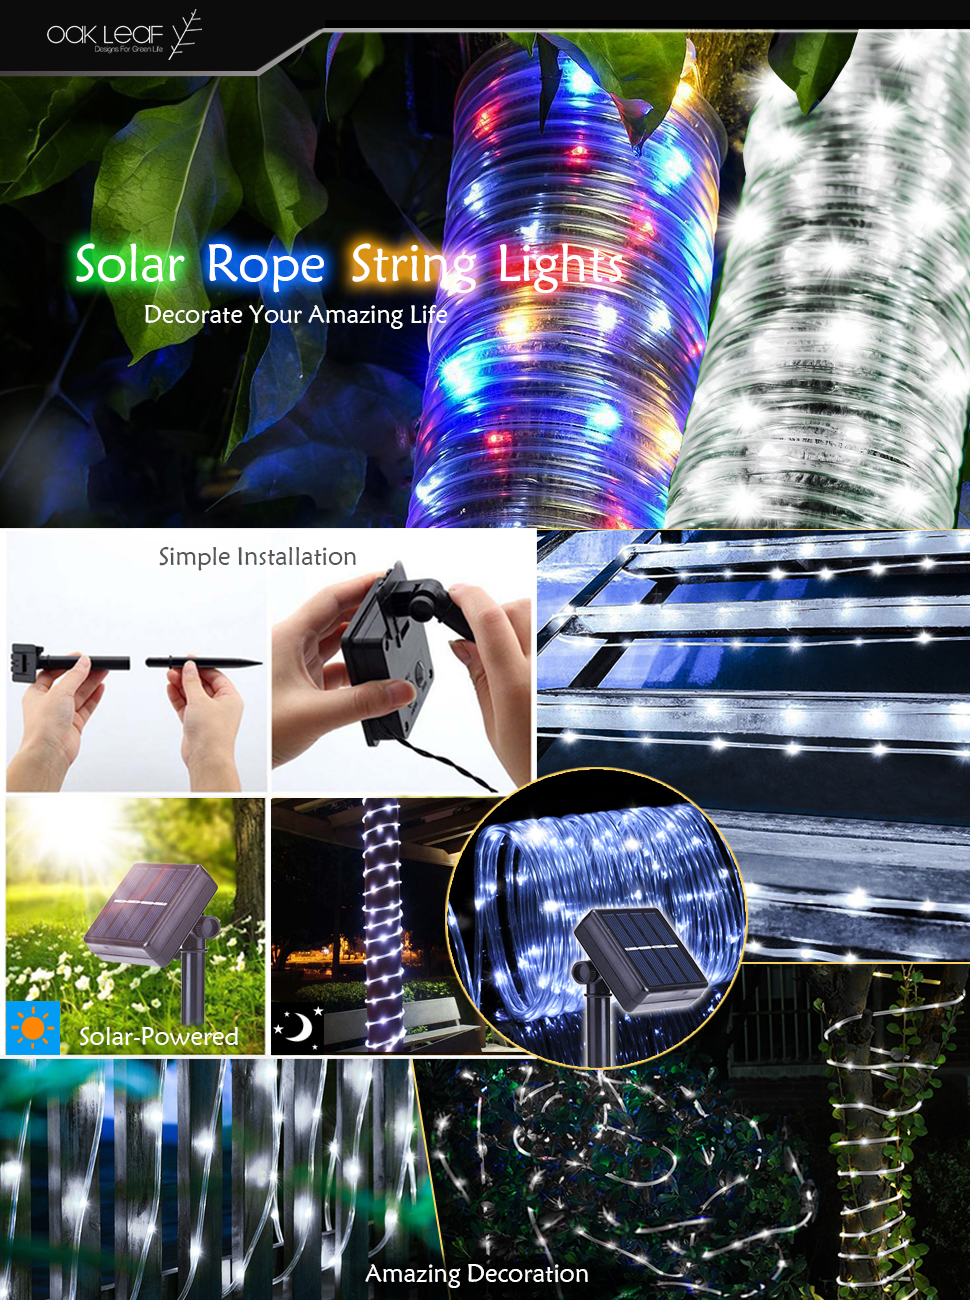 Solar rope lights outdoor oak leaf 41ft 100led led rope lighting light up your outdoor areas carefully protect your sockets and lights from water if thats exactly where you are oak leaf solar rope lights can bring workwithnaturefo